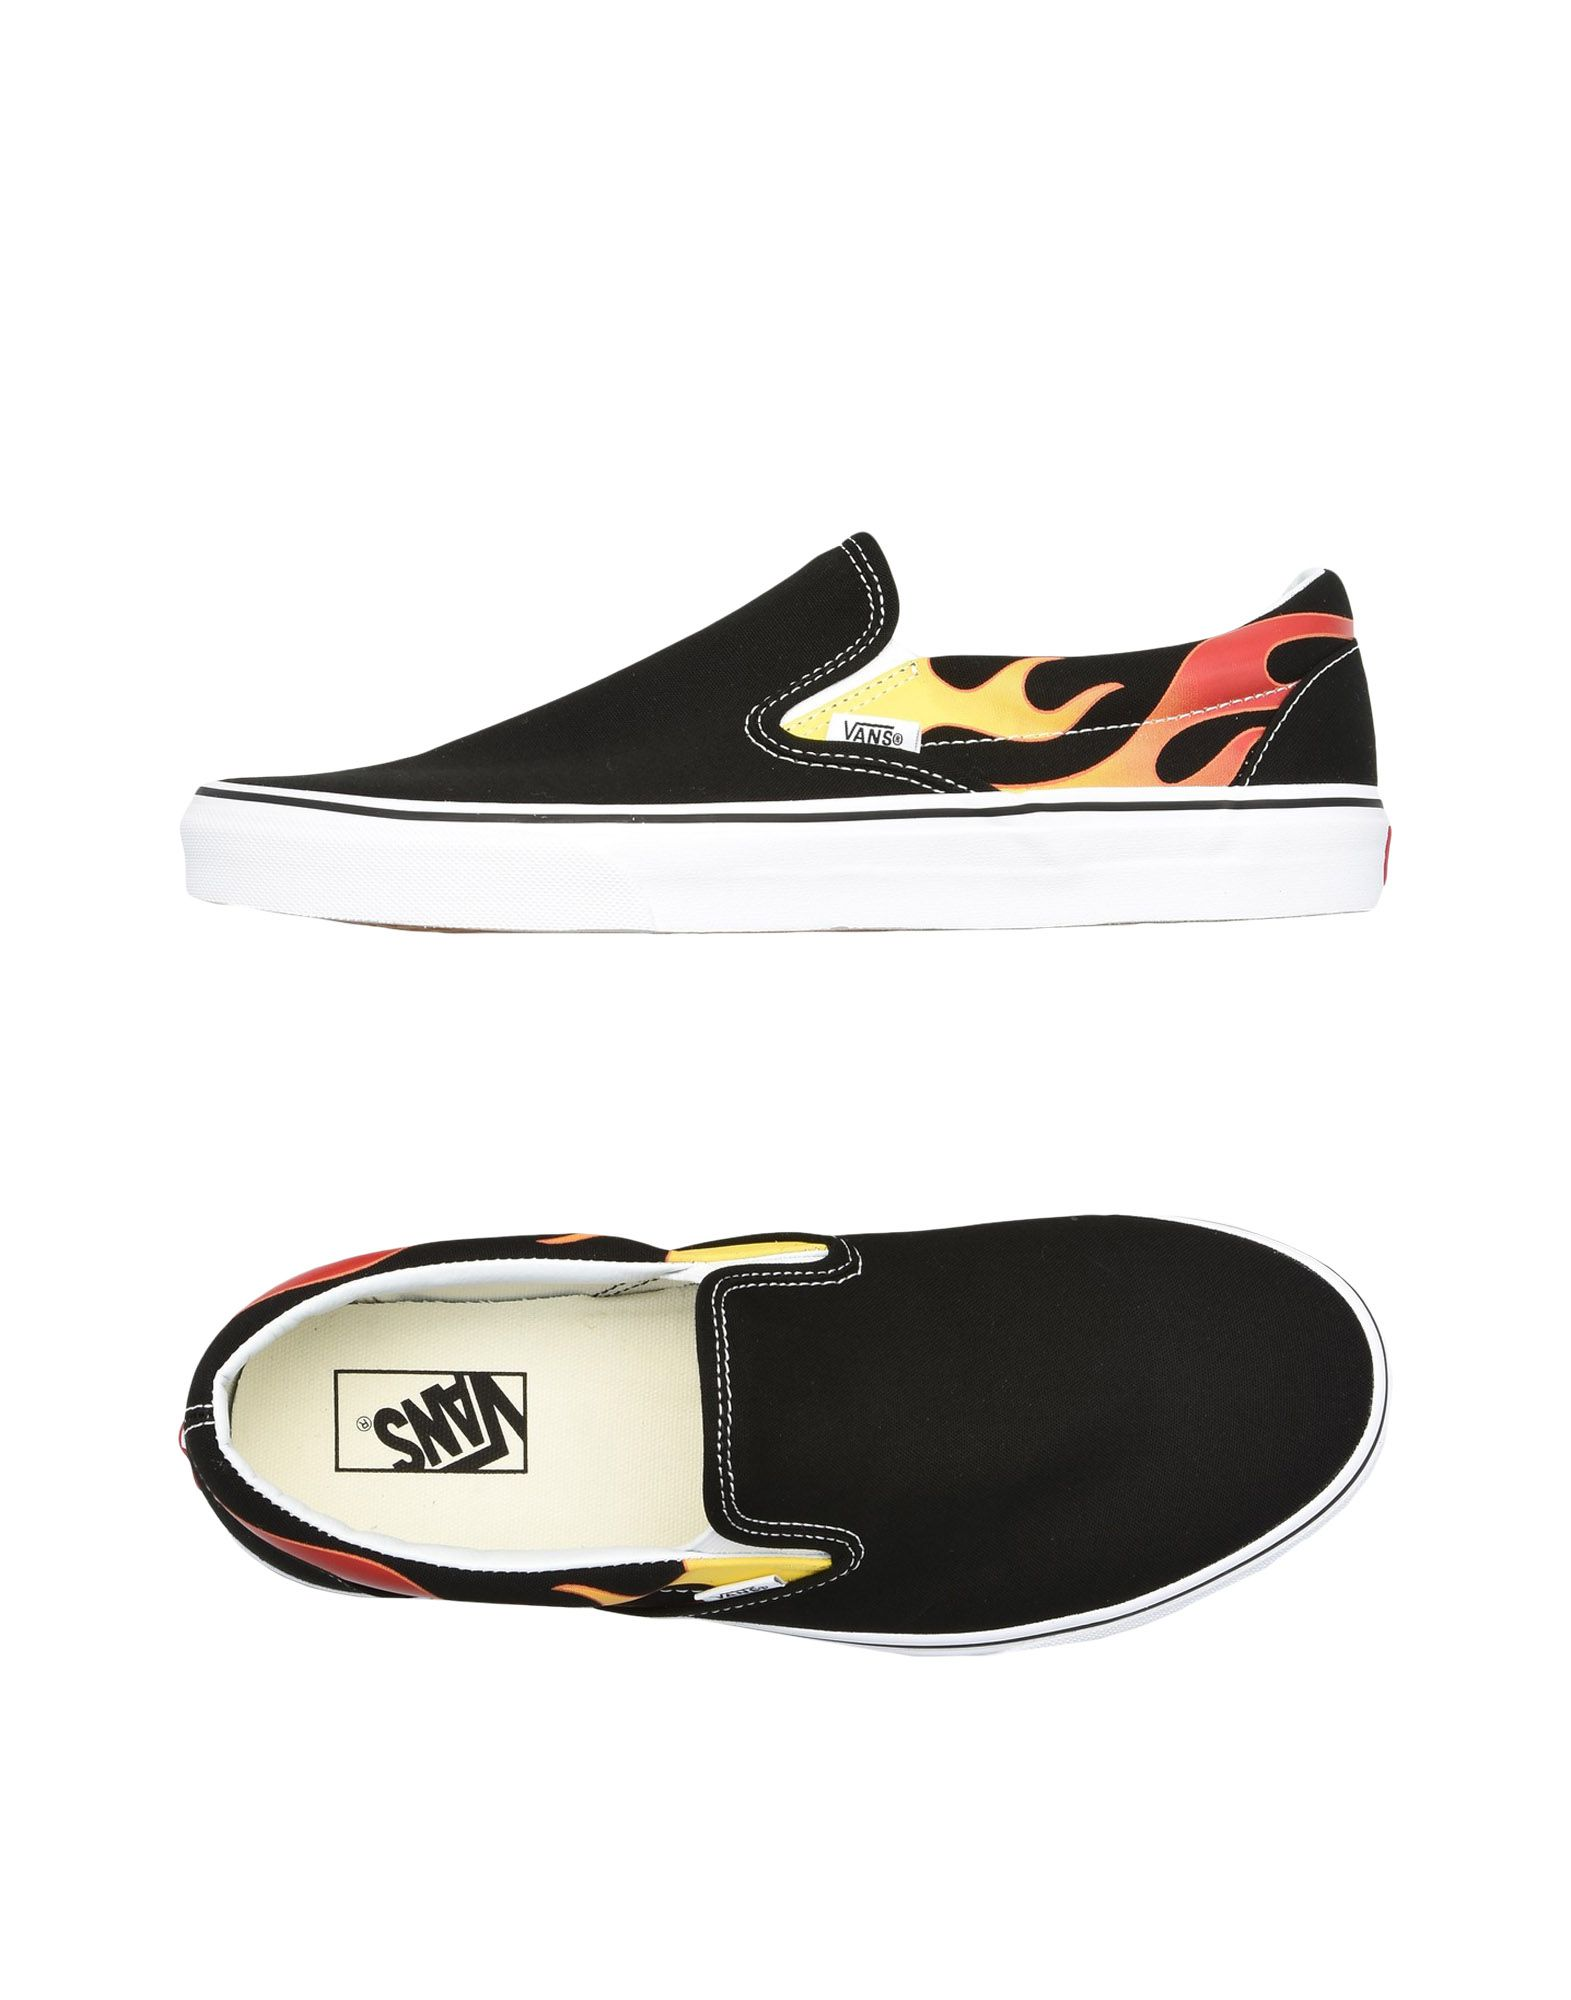 Sneakers Vans Slip On Flames Pack - Uomo - 11496621HQ